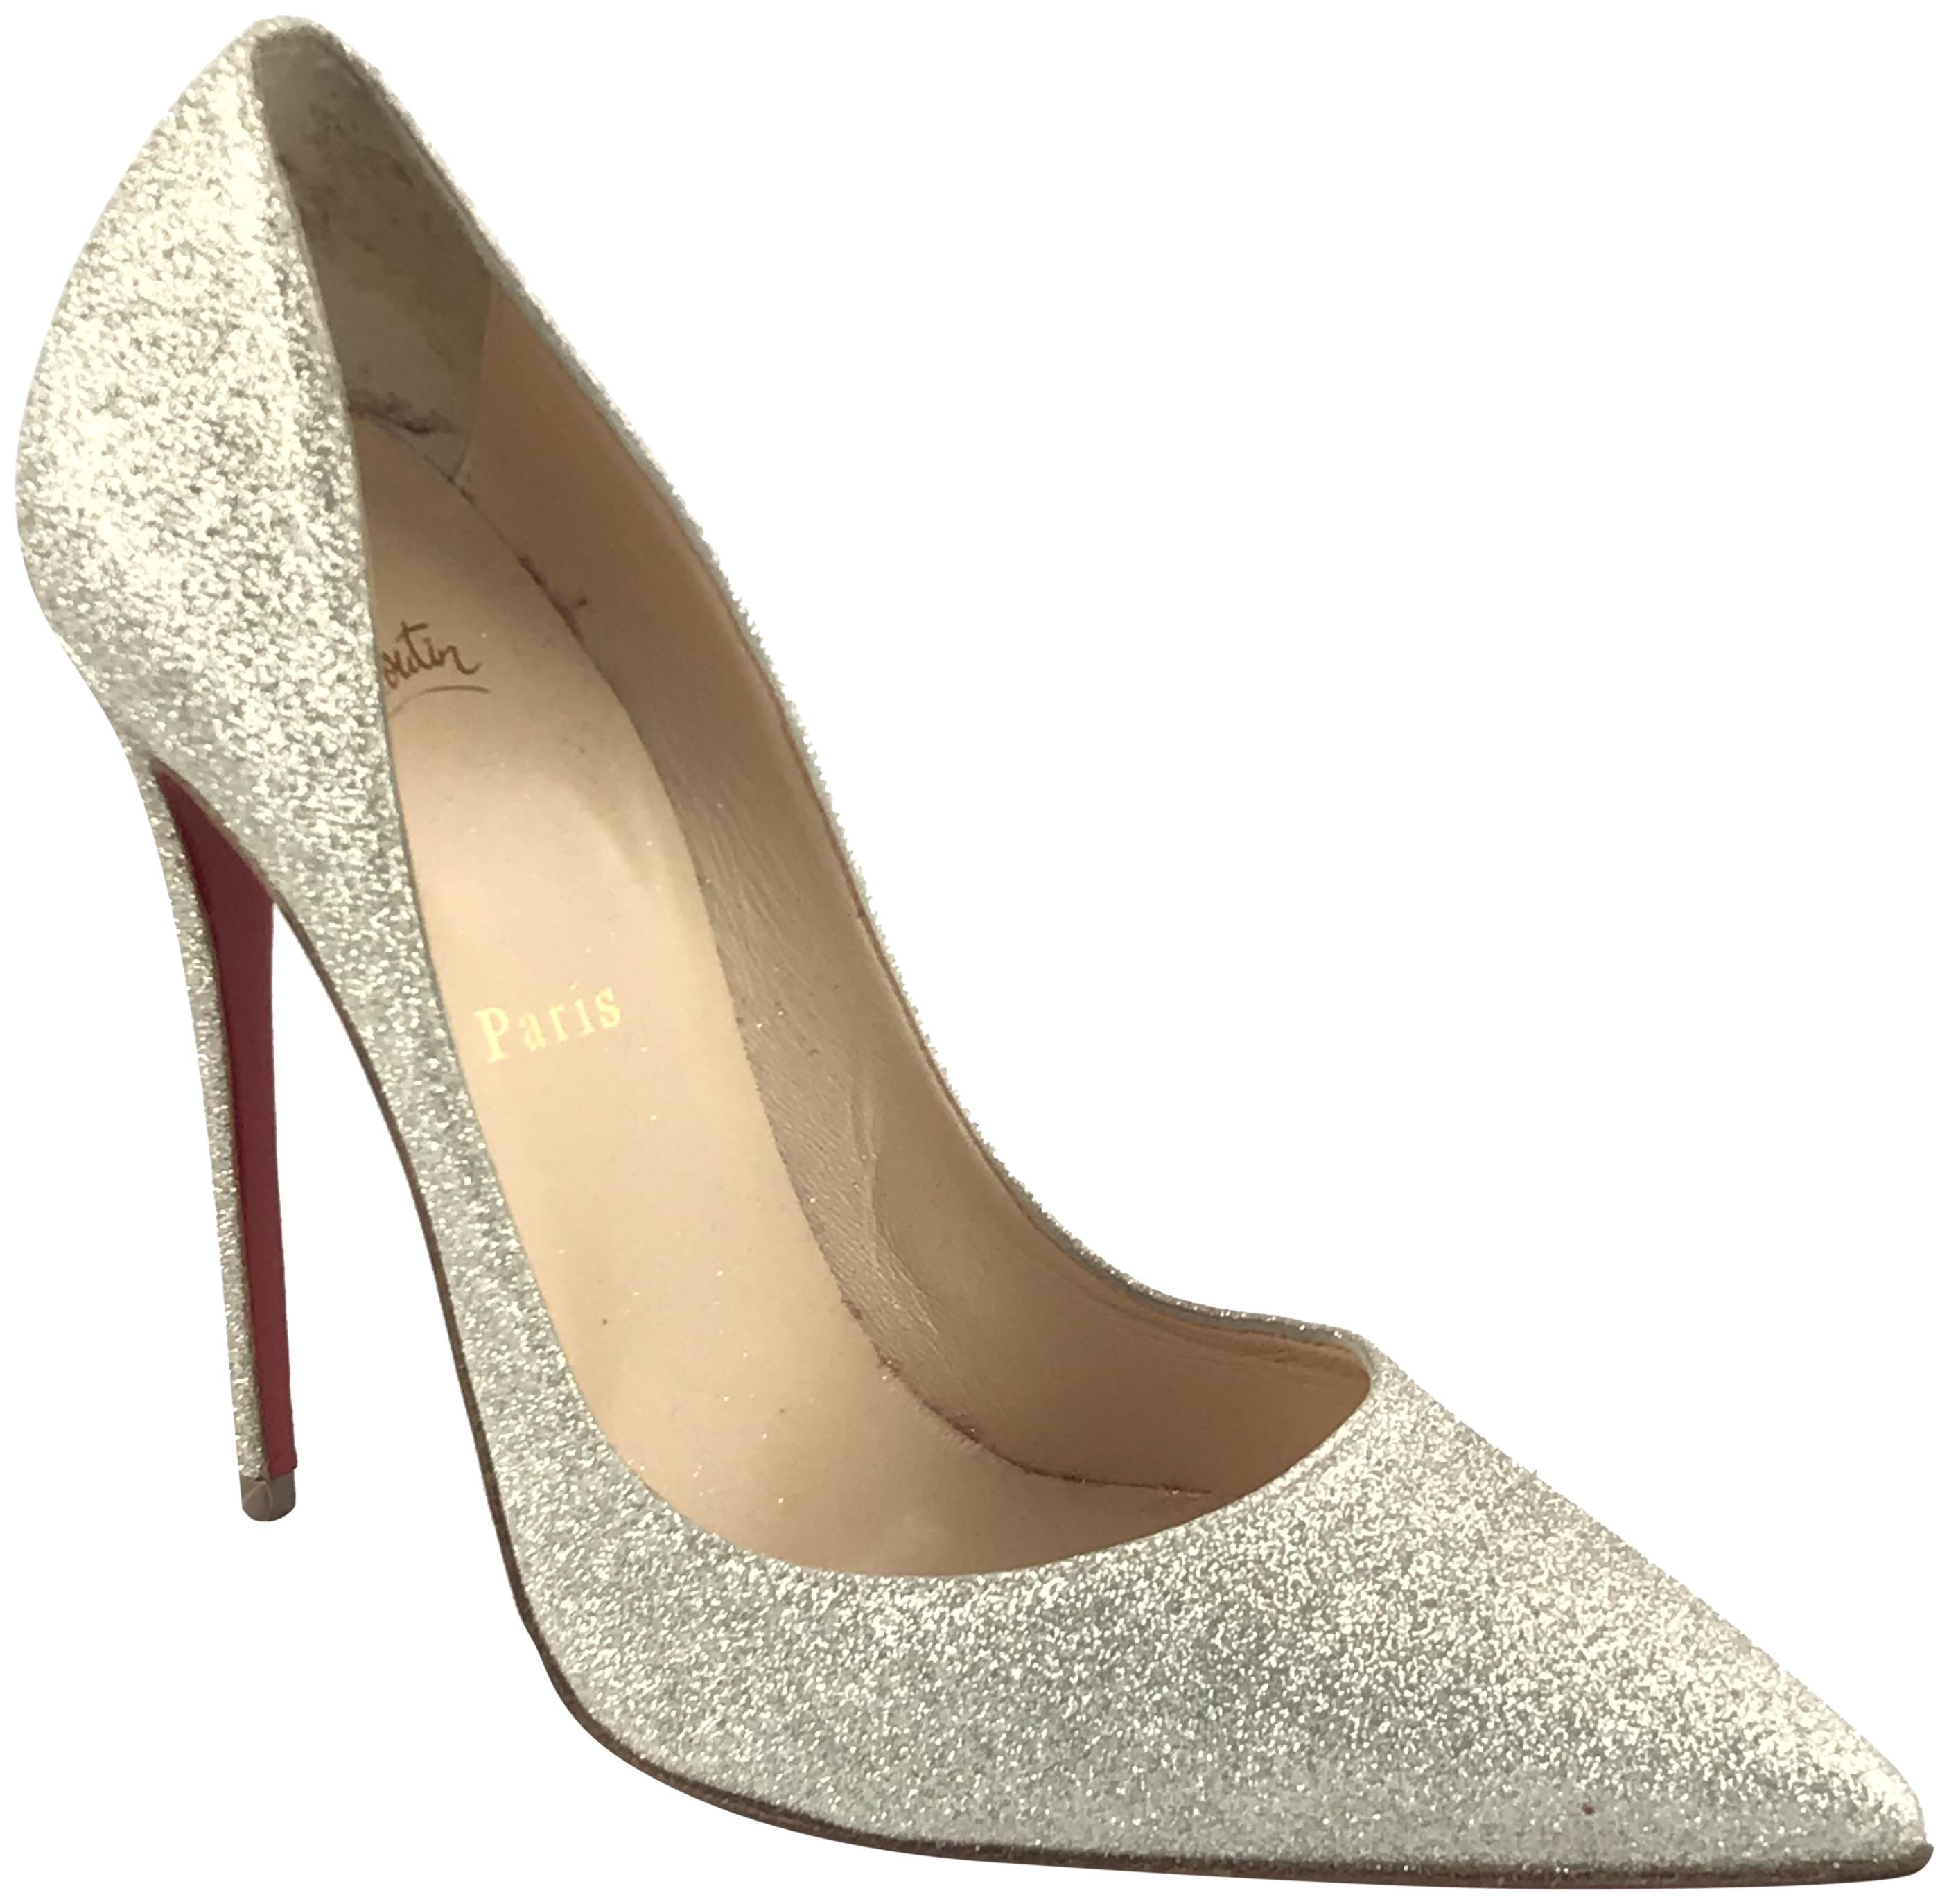 548a852890c8 Christian Louboutin Silver-gold So Kate 120 Pumps Size EU 40 40 40 (Approx  Skip to content